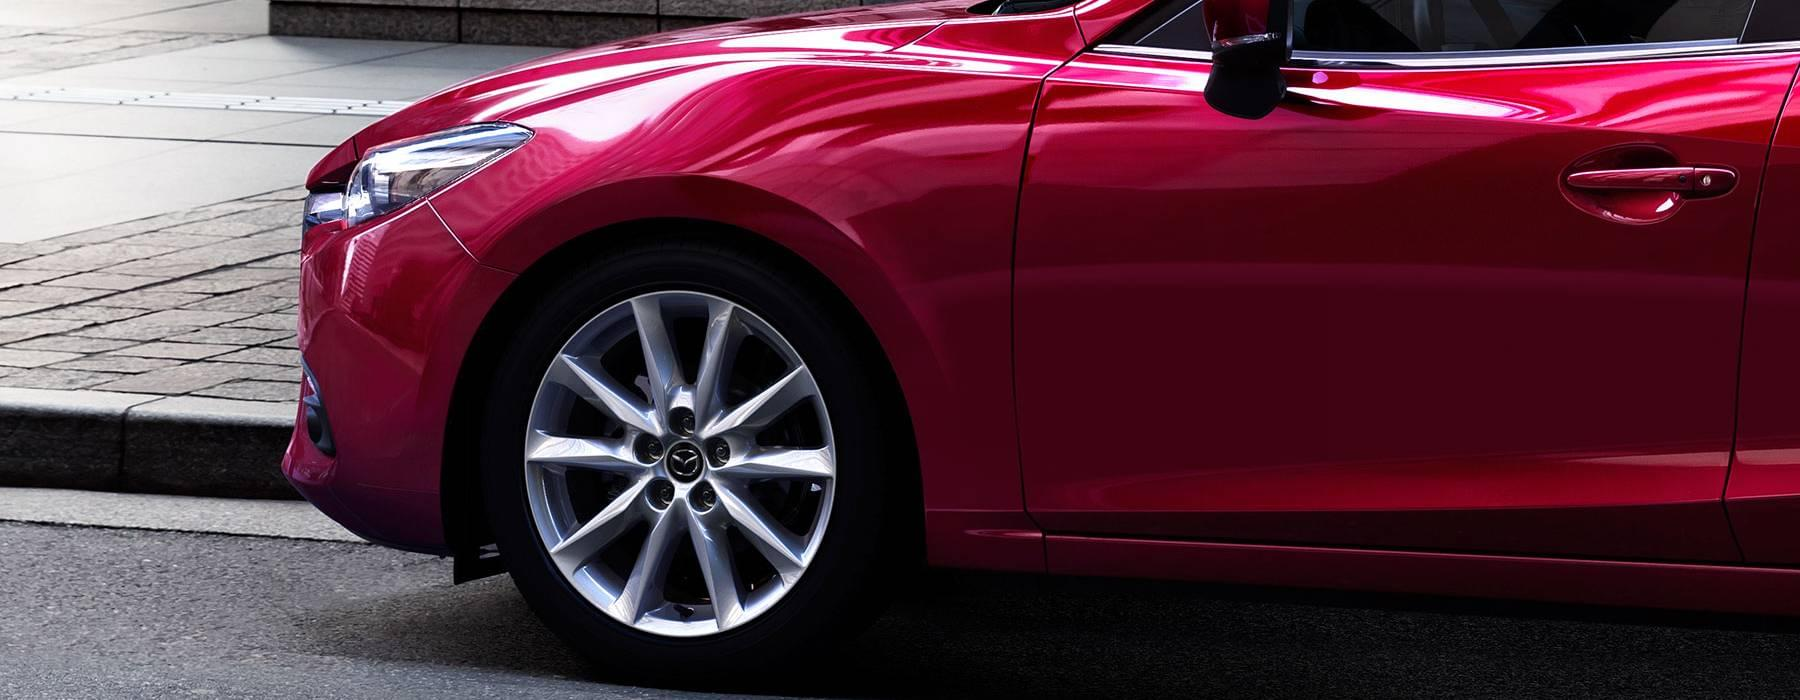 Hyundai Elantra: Recommended cold tire inflation pressures